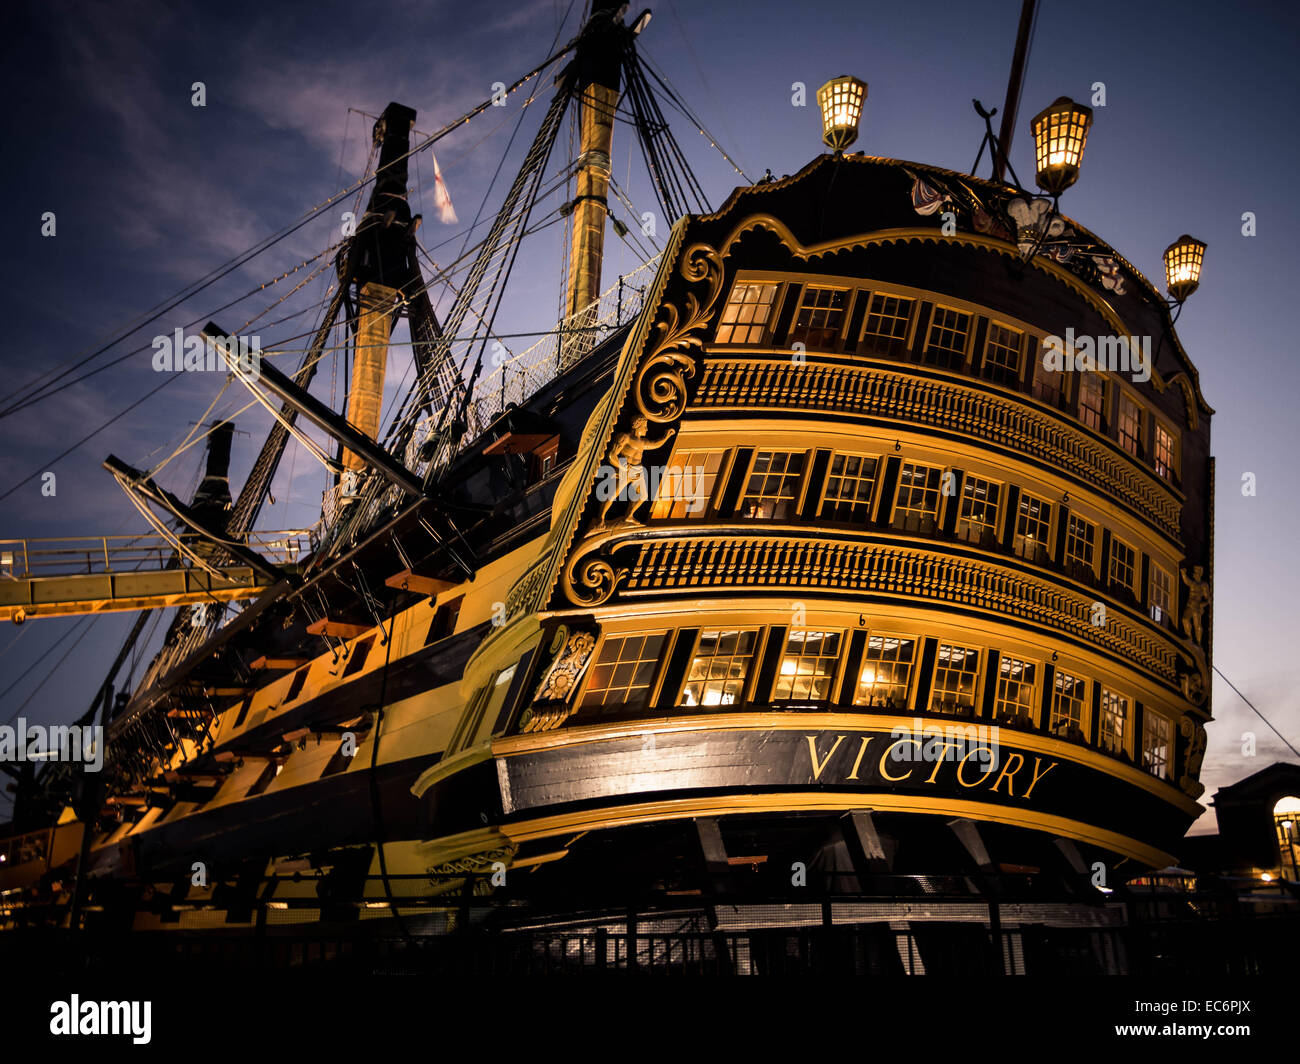 floodlit-hms-victory-shortly-after-sunset-EC6PJX.jpg